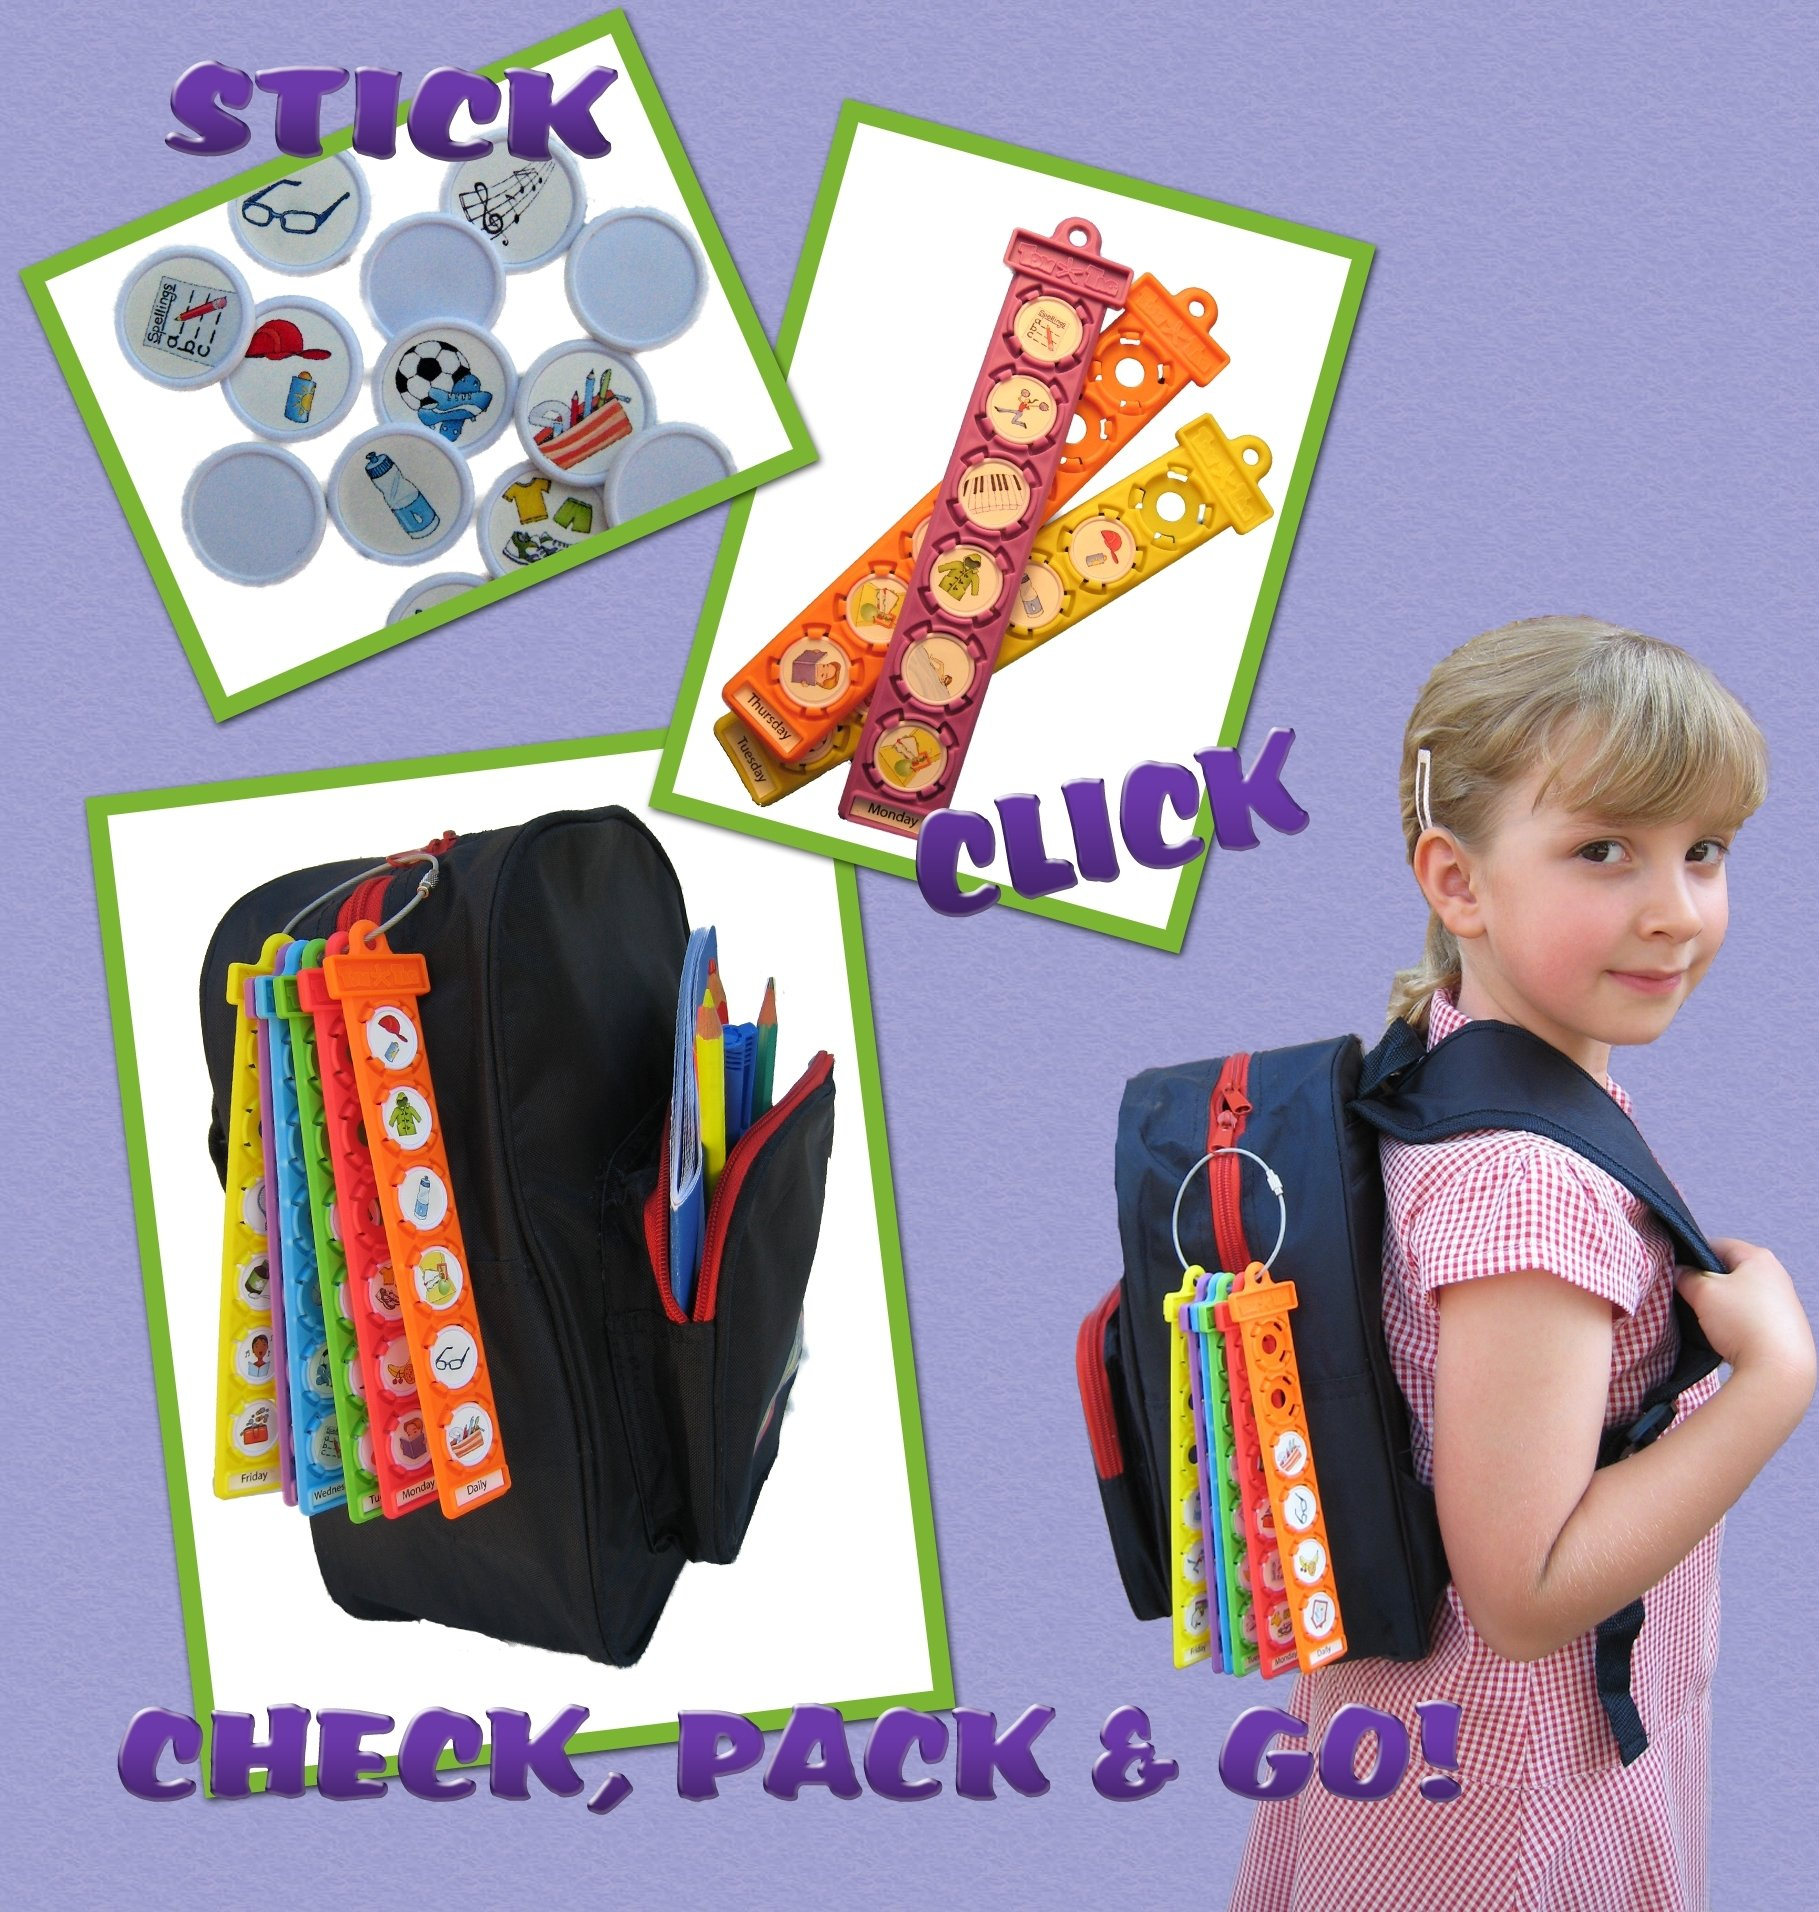 10 Nice Kids Invention Ideas For School Projects new tool that helps kids pack their bag for school 2021